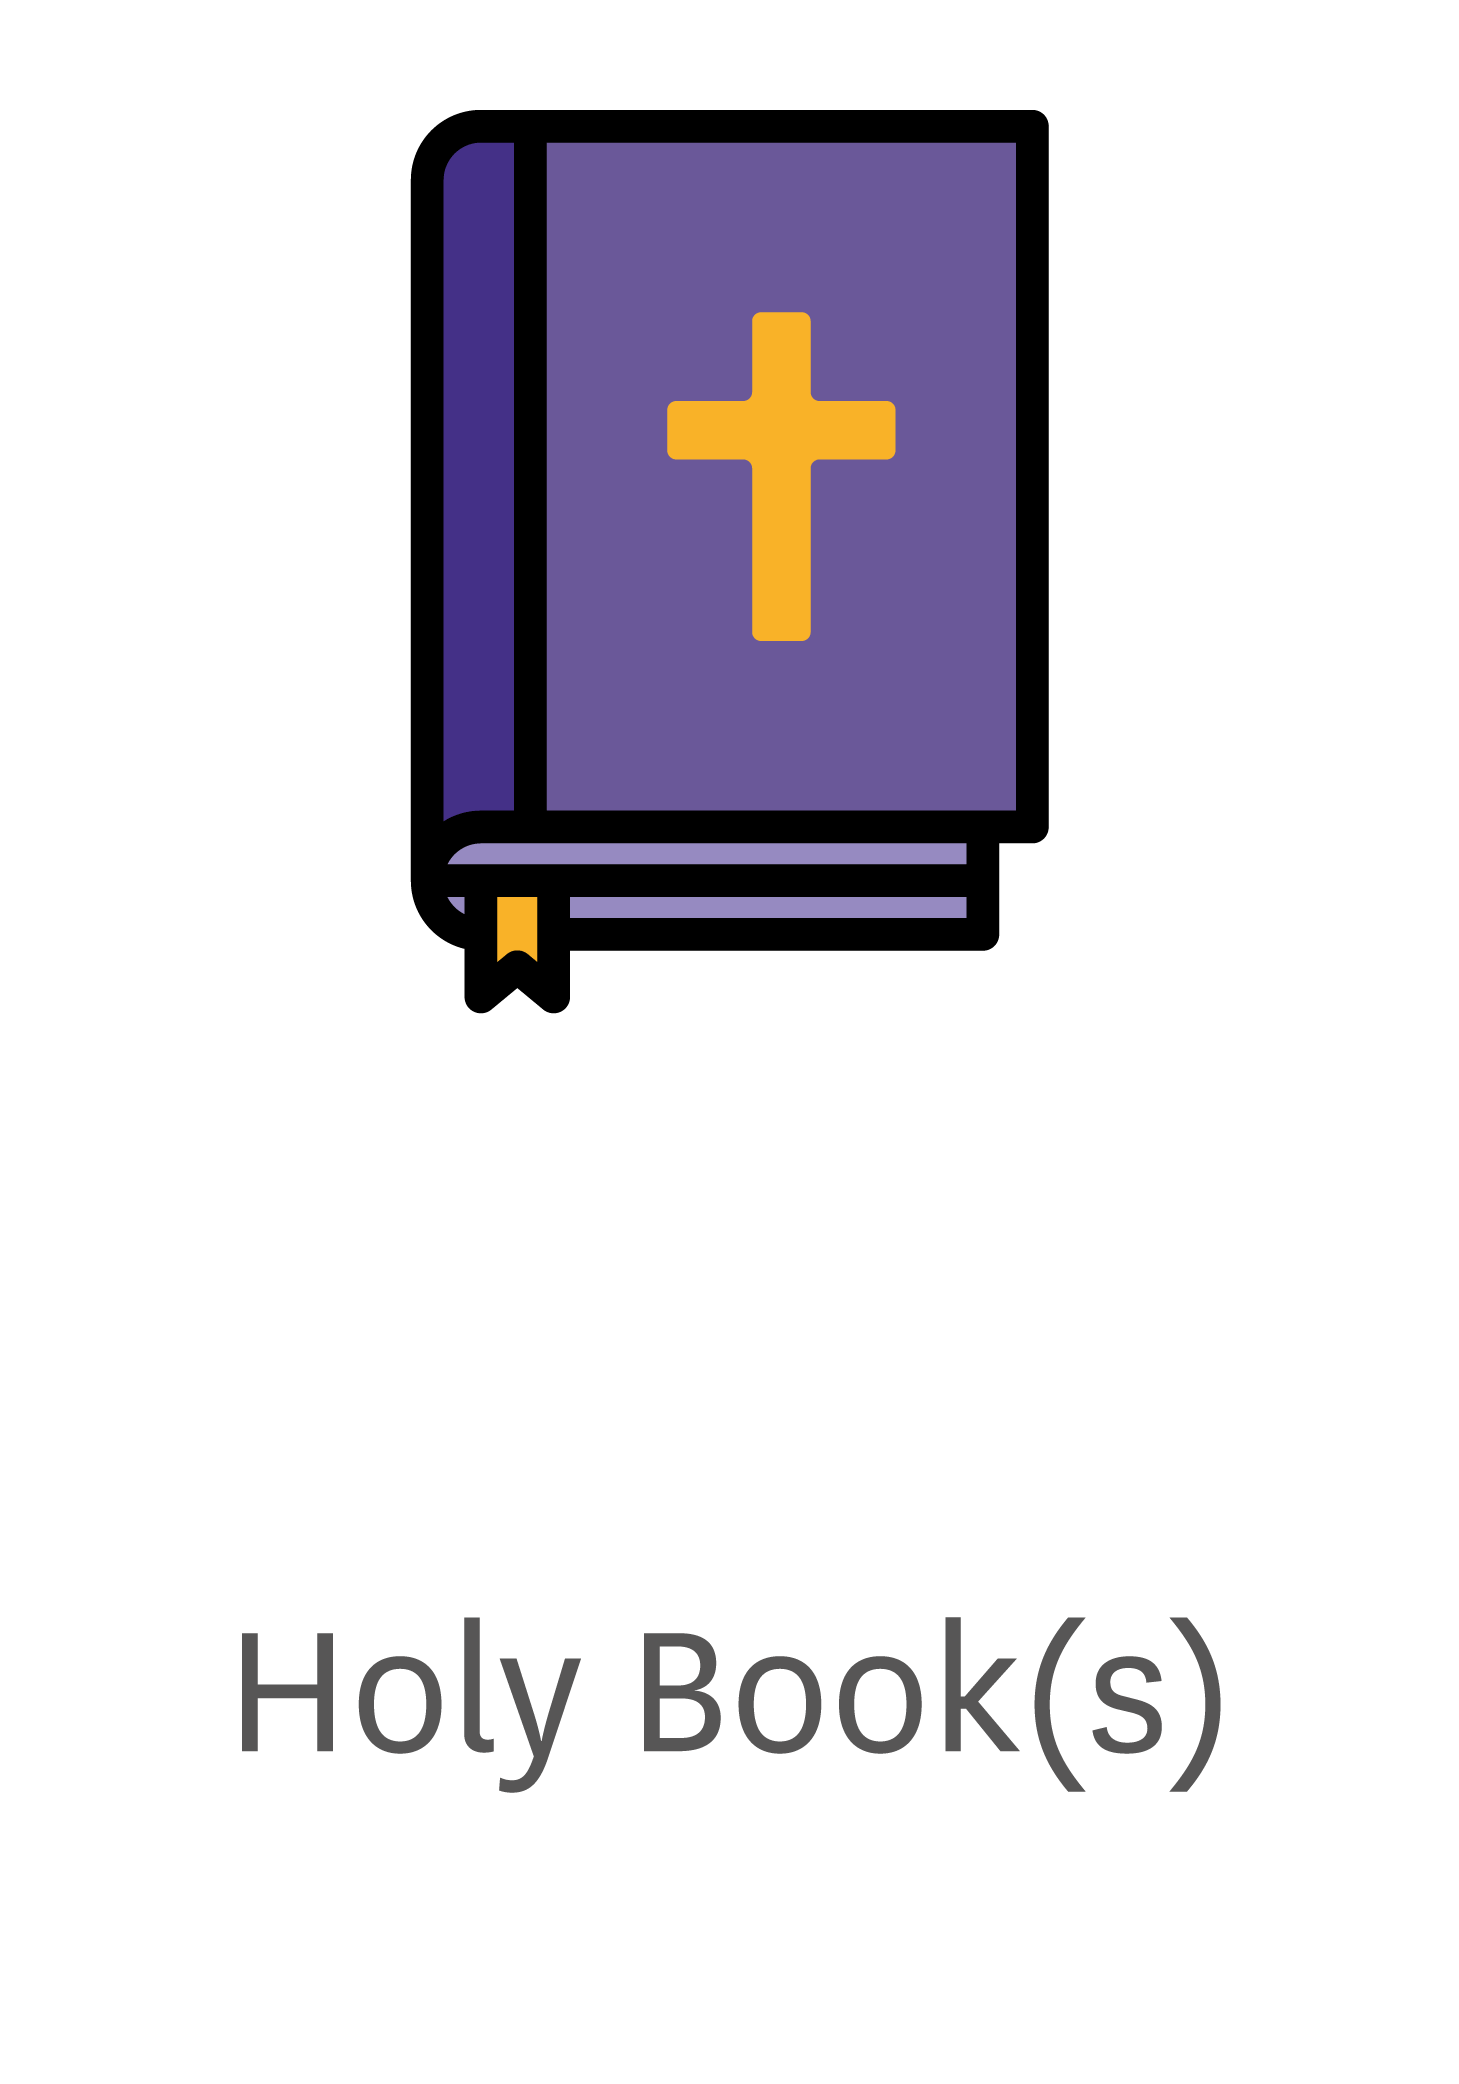 faith_whats_included_holy_books.png